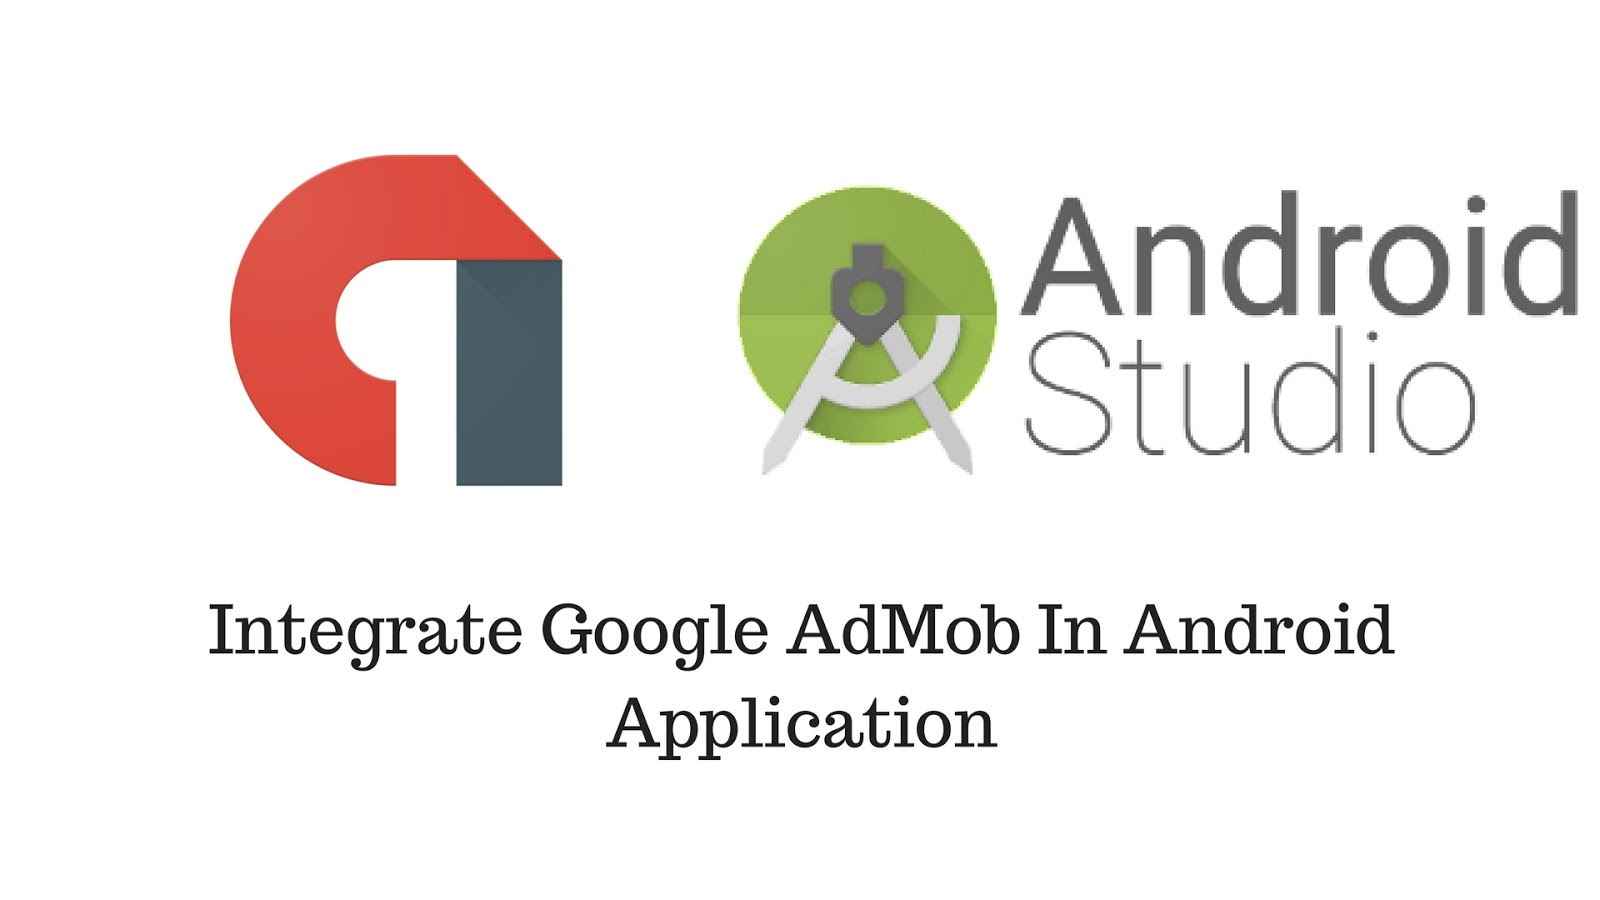 Integrate Google AdMob In Android Application